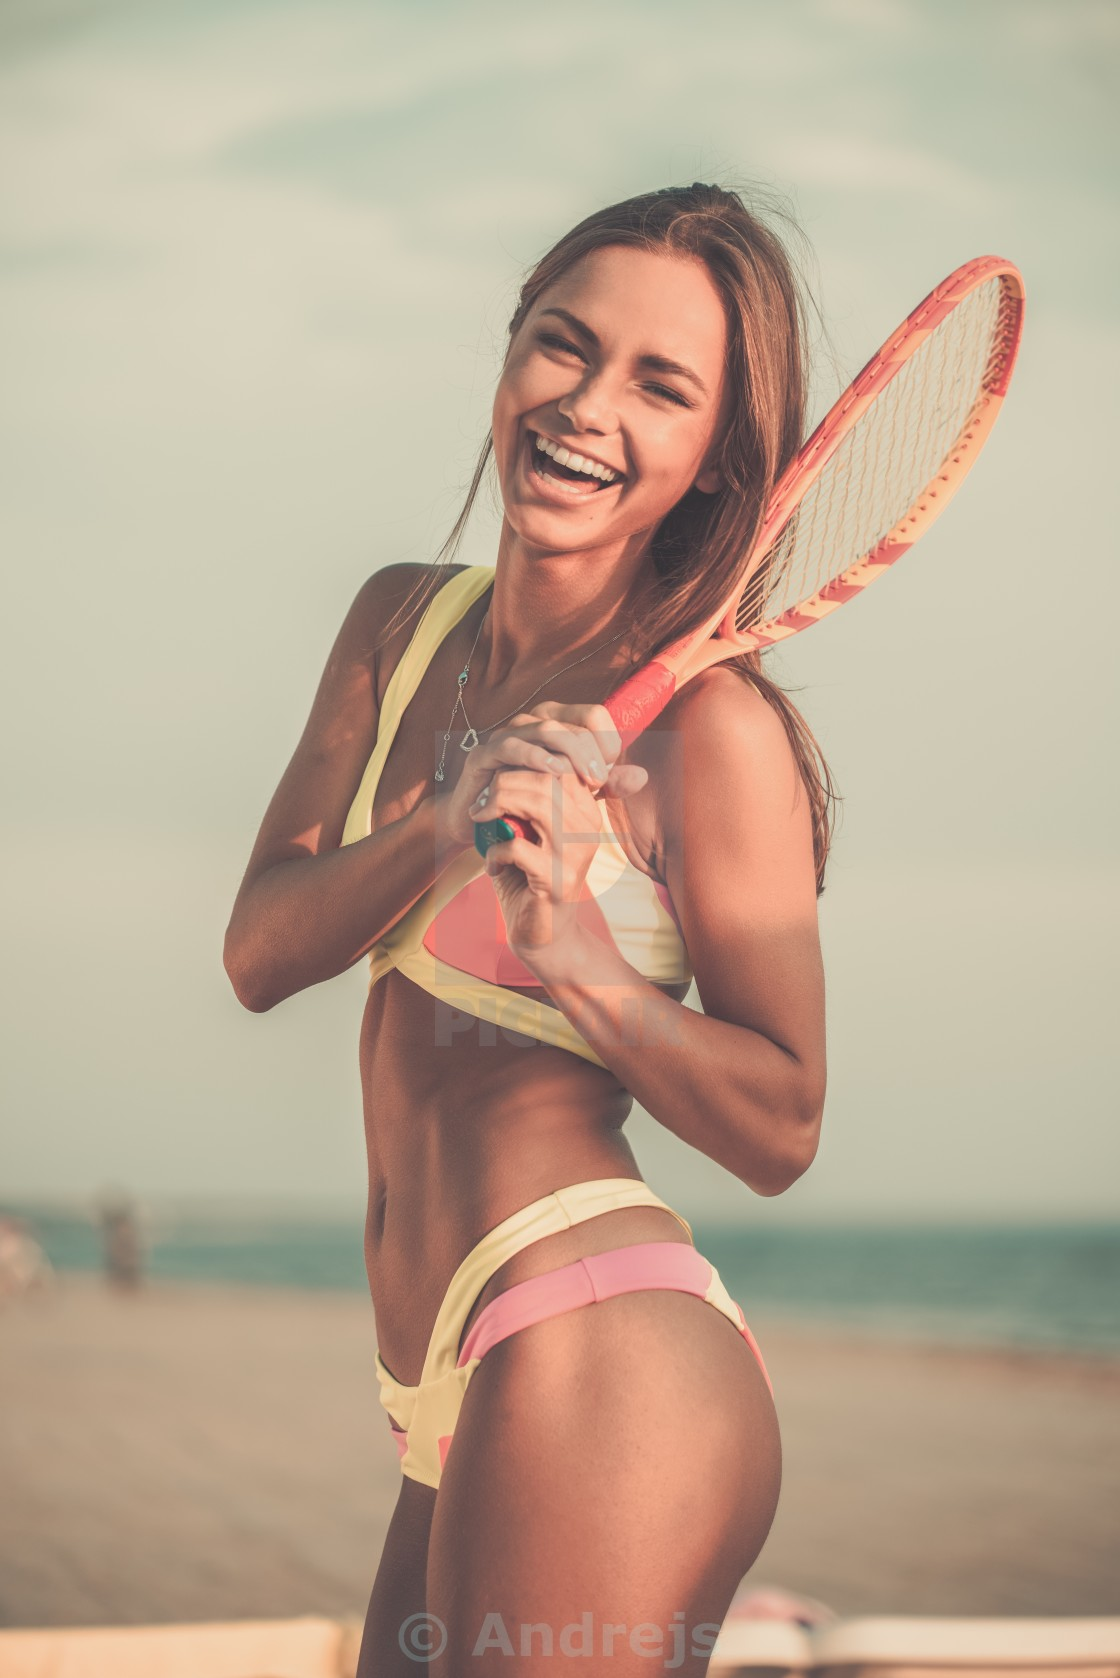 """Young girl in swimming suit on a beach with racquet"" stock image"